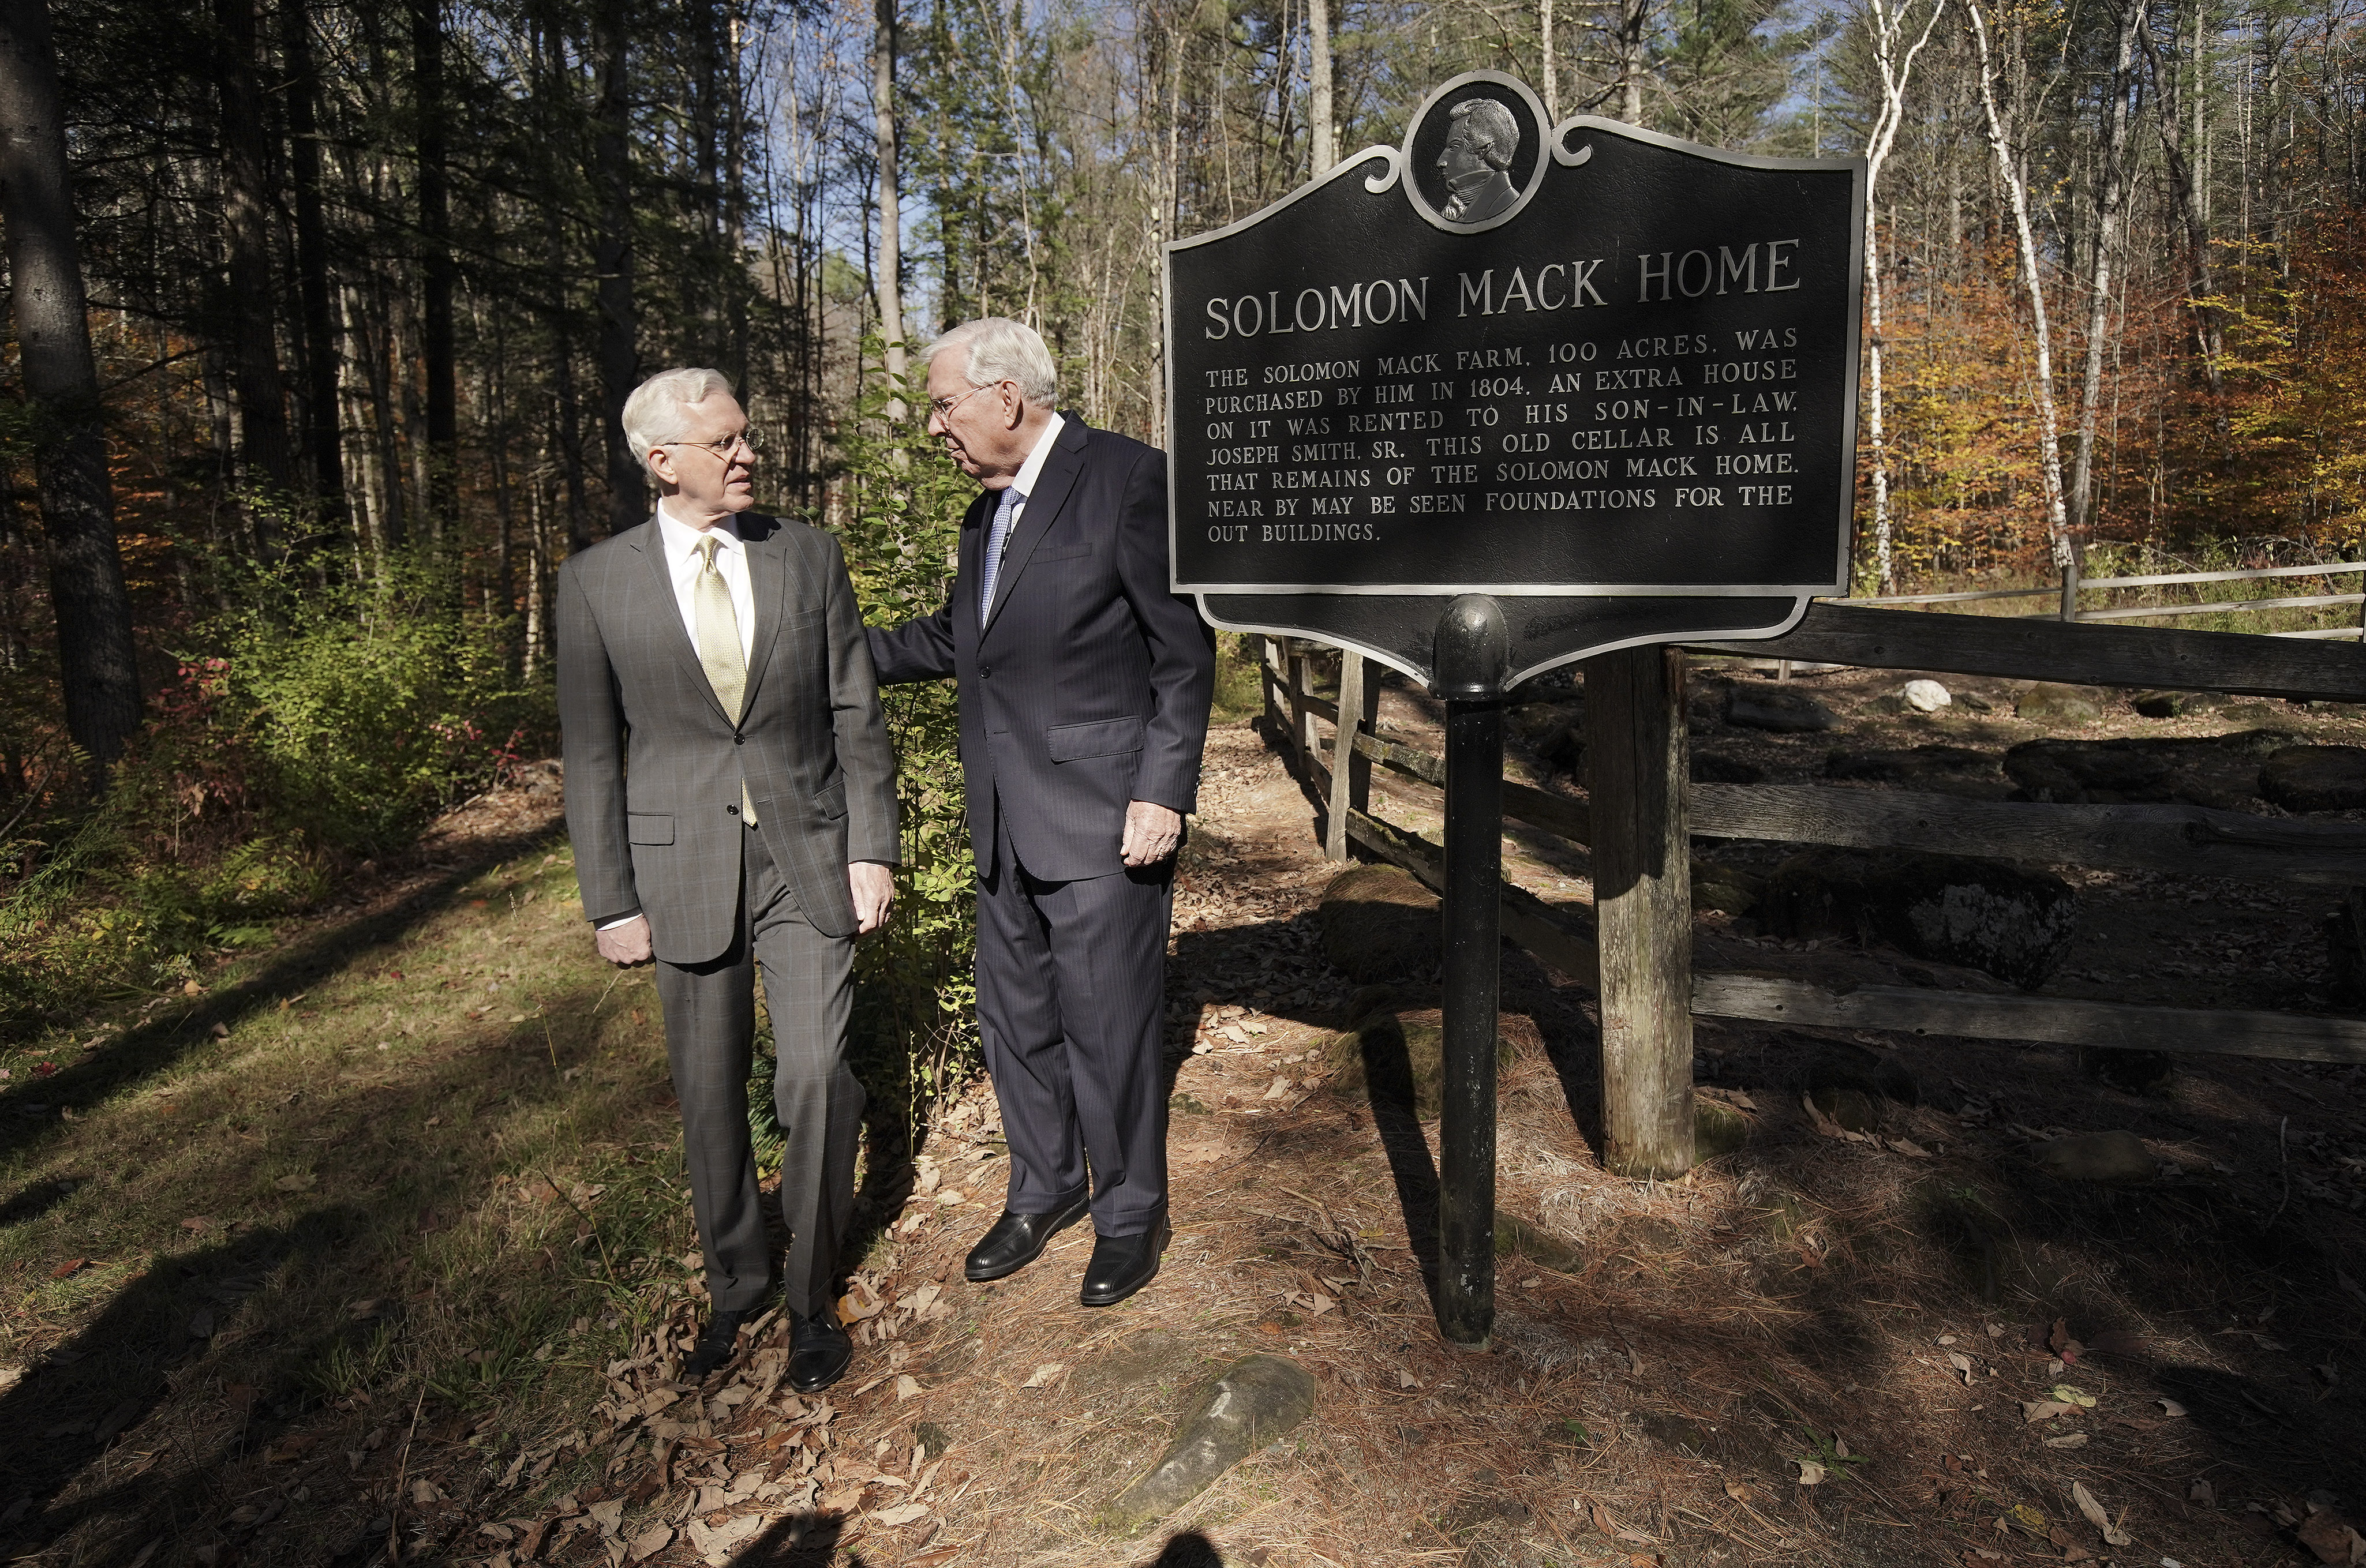 President M. Russell Ballard, acting president of the Quorum of the Twelve Apostles of The Church of Jesus Christ of Latter-day Saints, right, and Elder D. Todd Christofferson of the Quorum of the Twelve Apostles look over the Solomon Mack home at the Joseph Smith Birthplace Memorial in Sharon, Vt., on Saturday, Oct. 19, 2019.